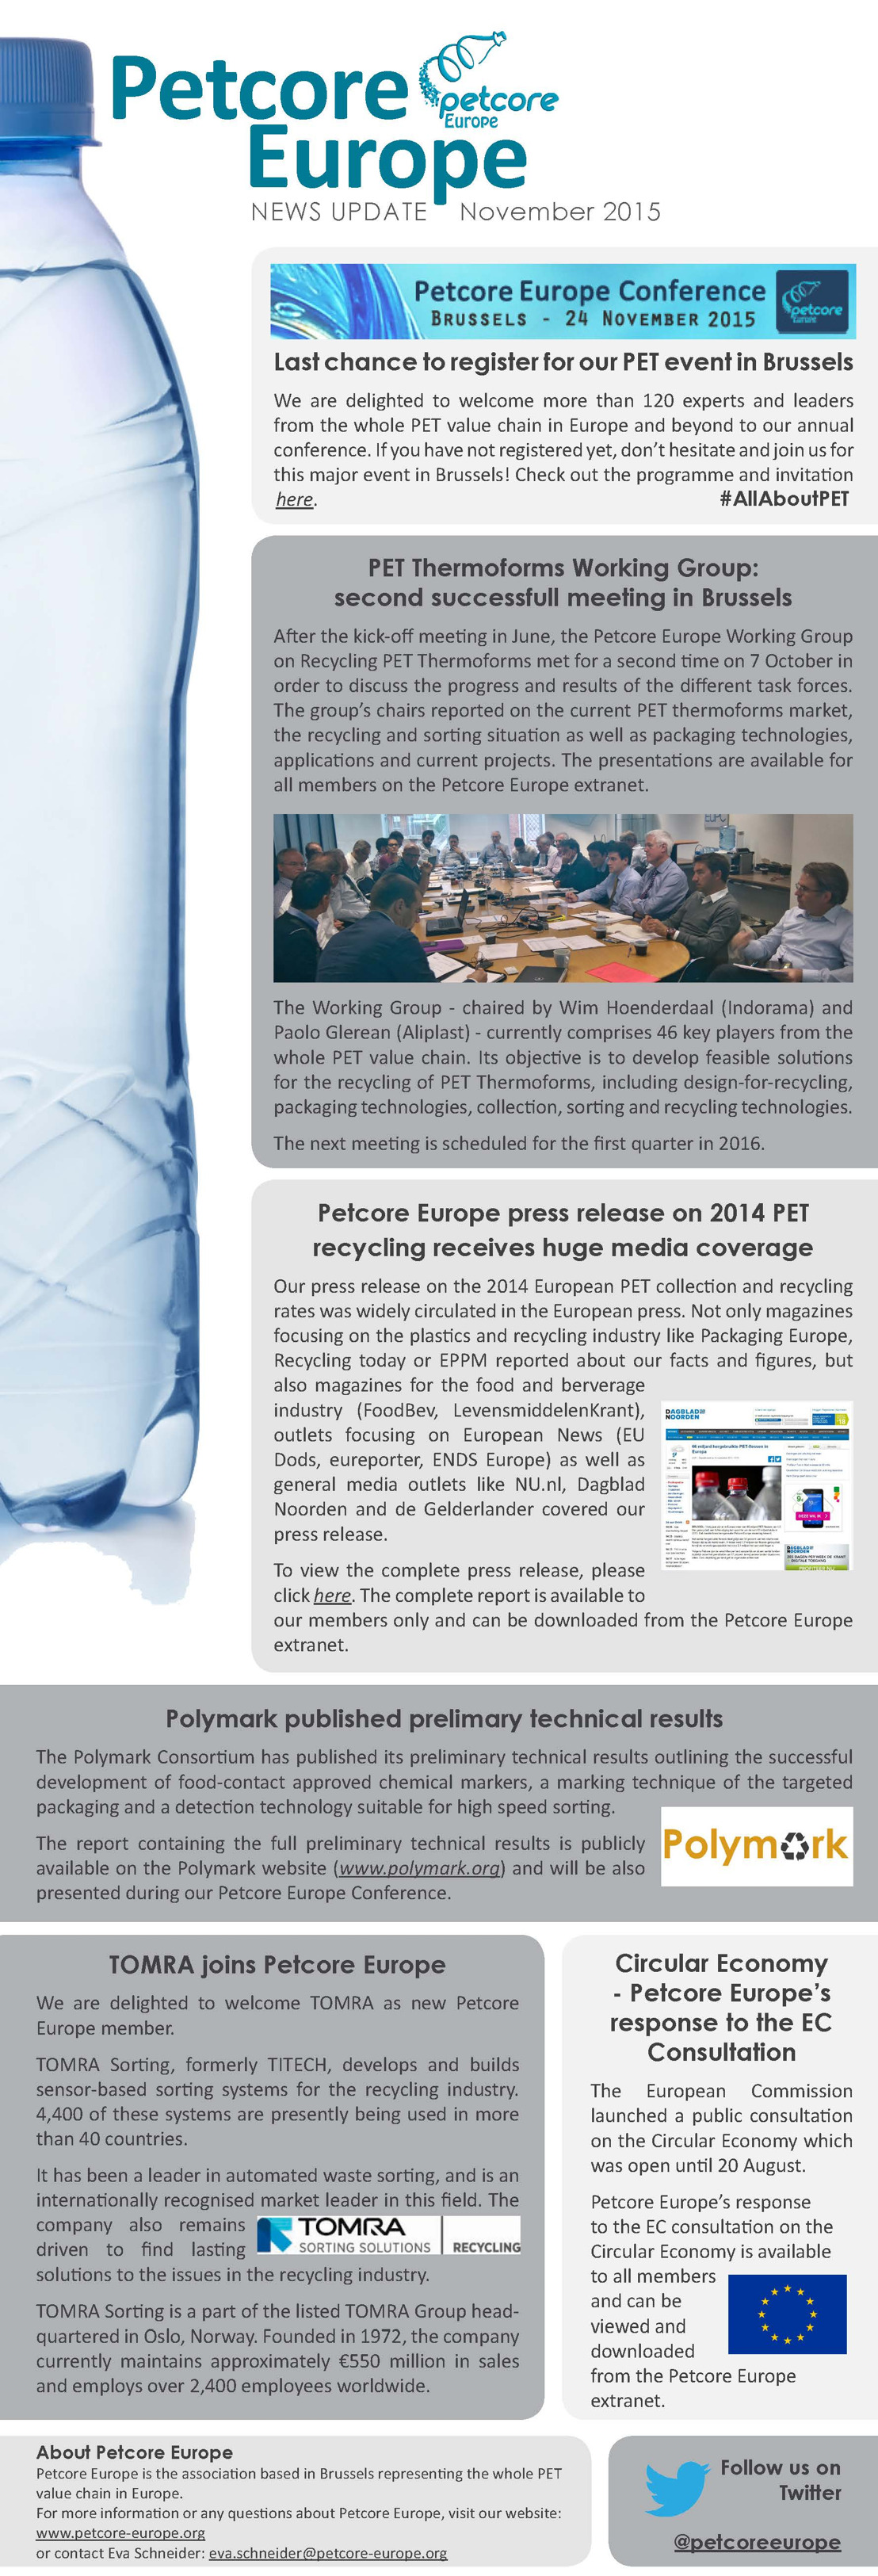 Petcore Europe News Update - November 2015